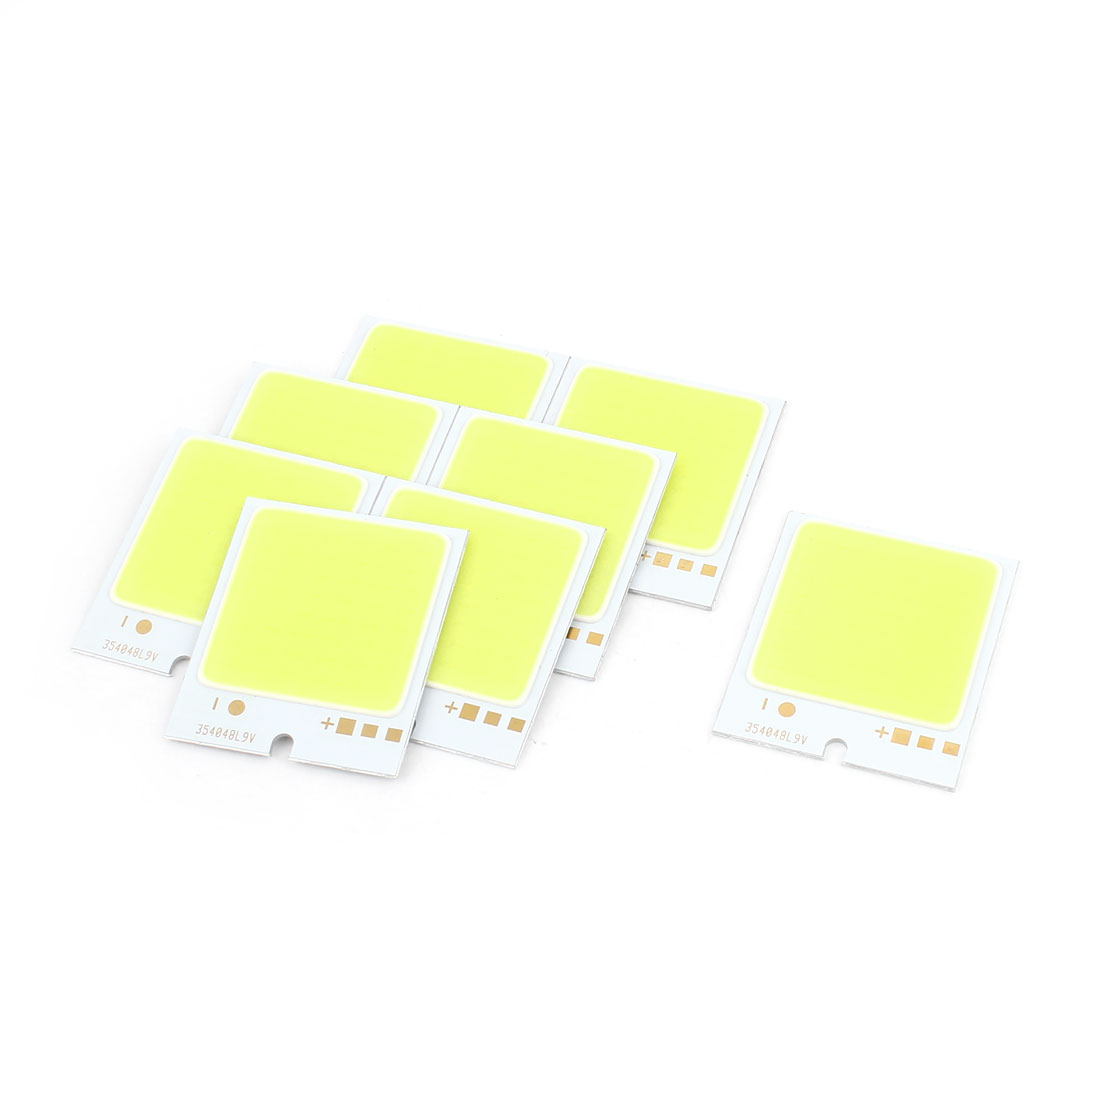 4W DC9-11V 400mA 80-90LM/W White LED Light COB Lamp Bead Chip 10PCS